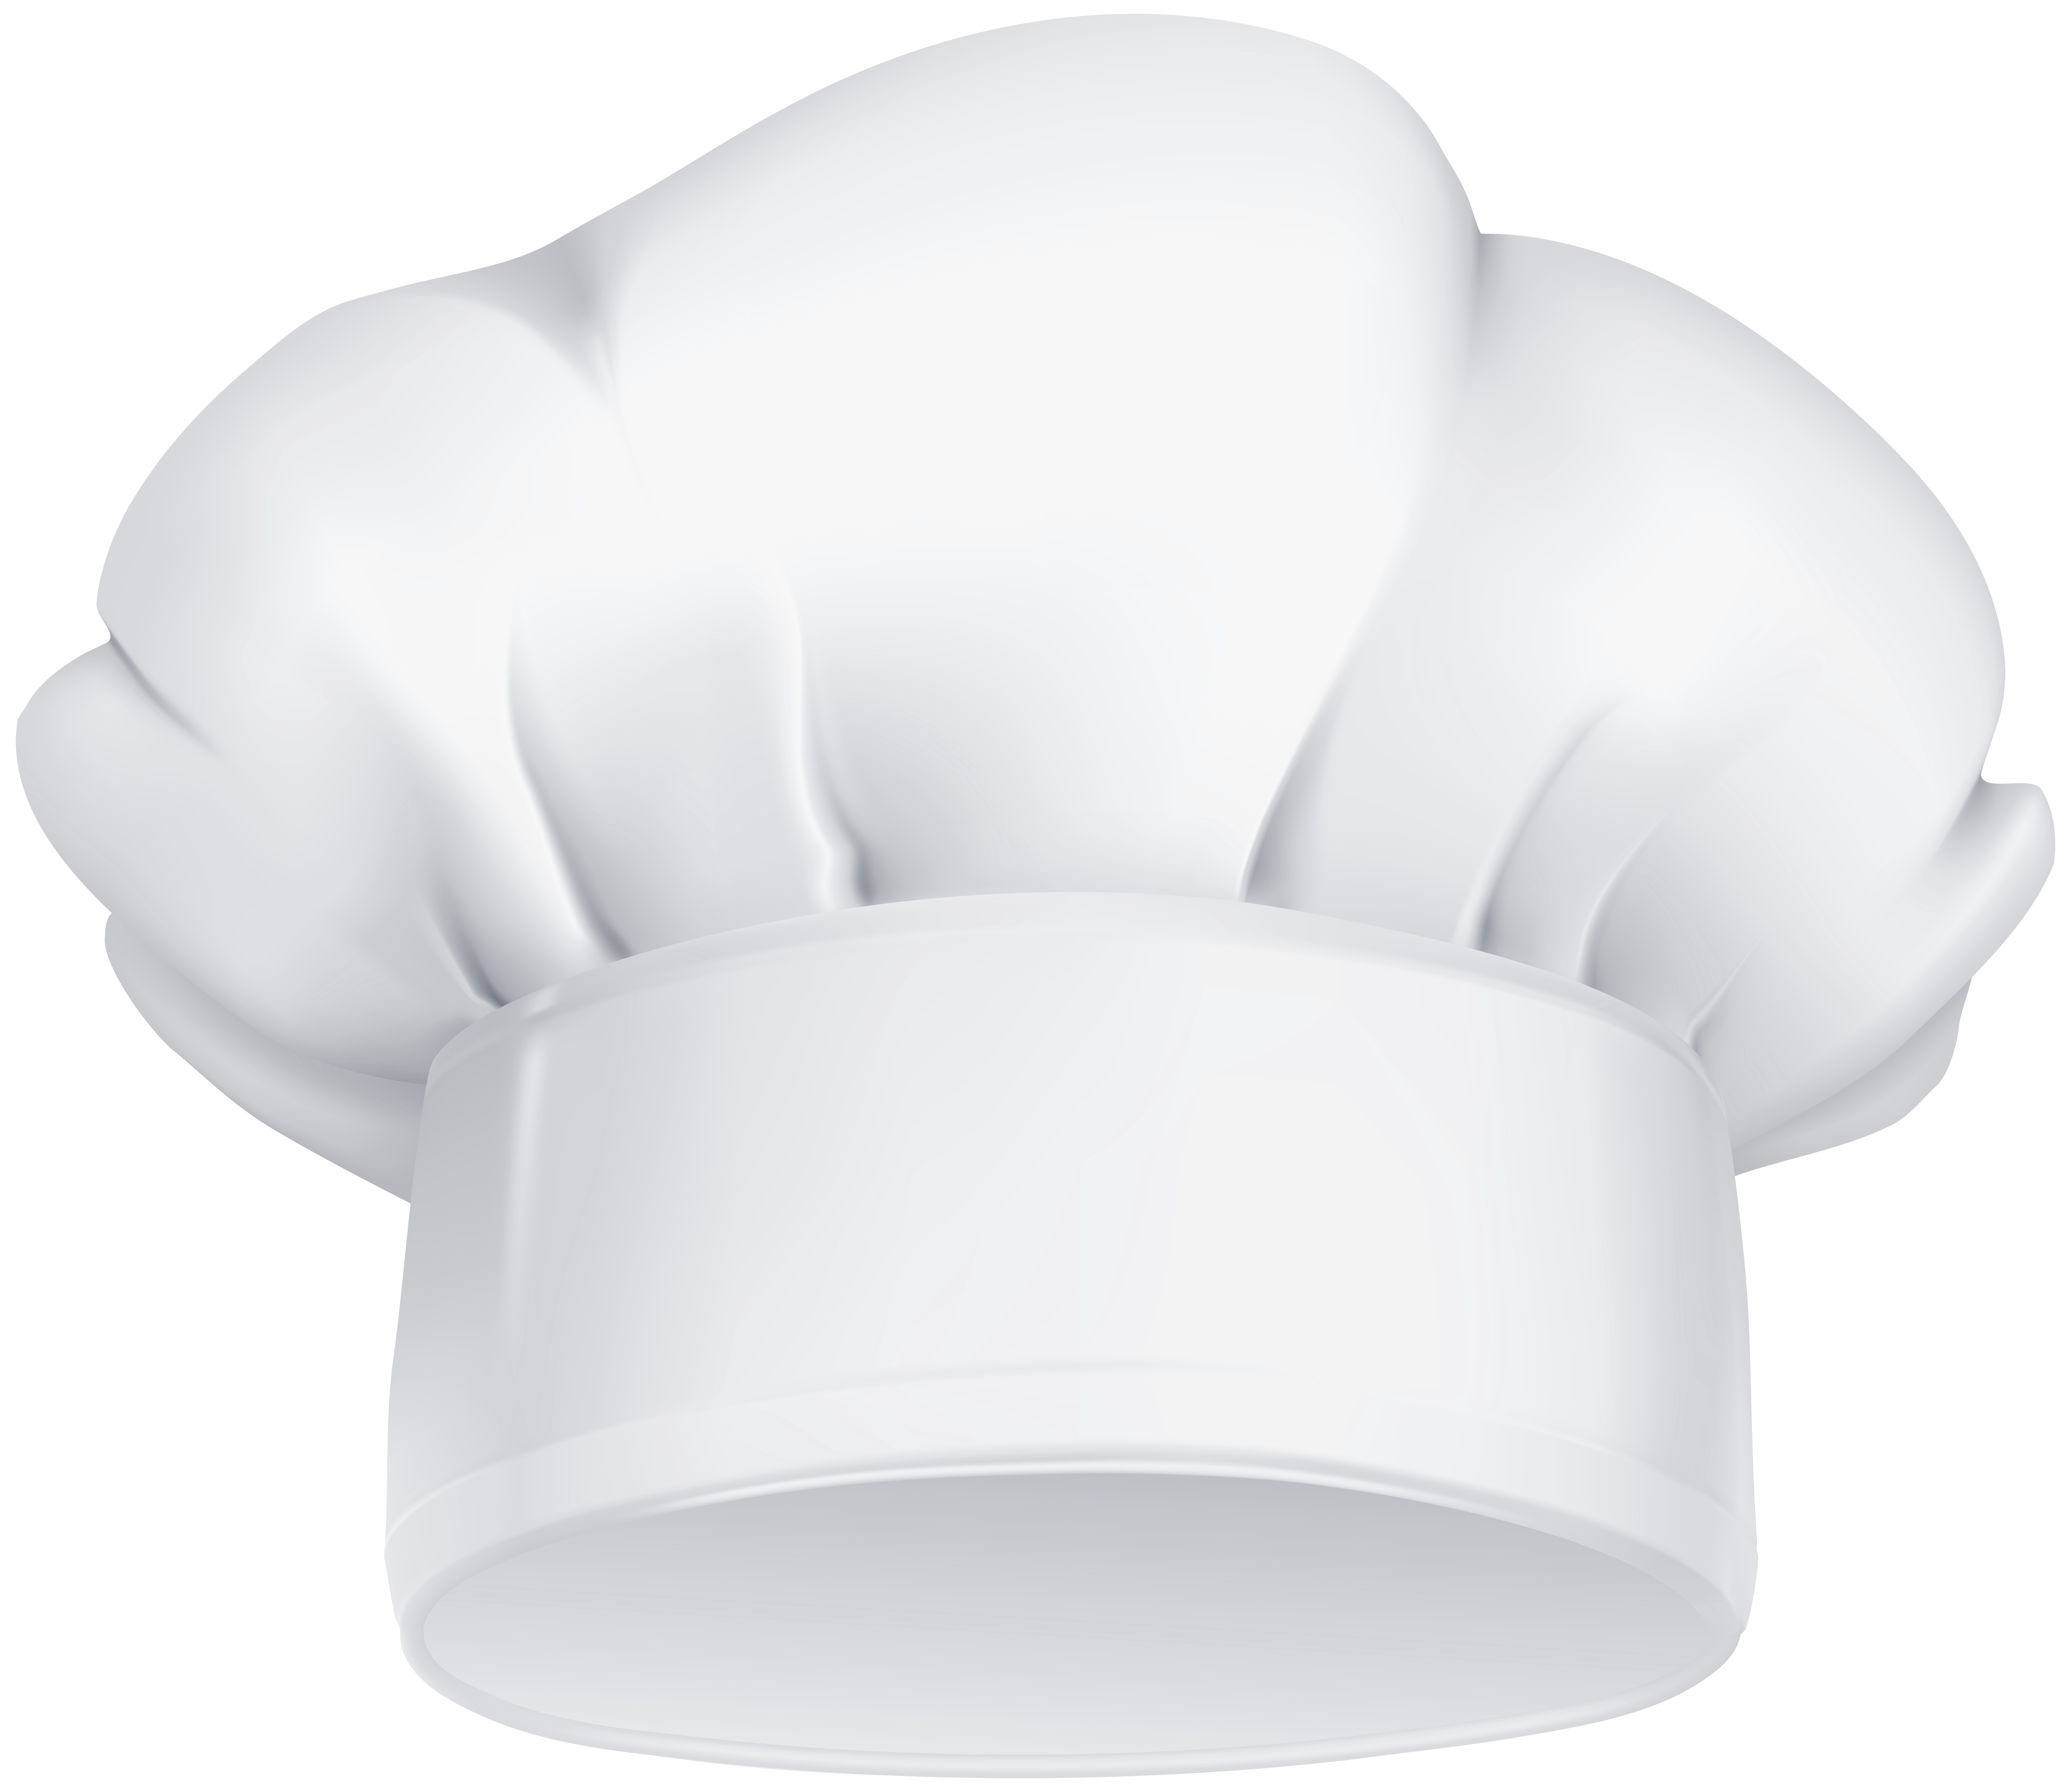 Chef hat transparent png. Clip art image gallery